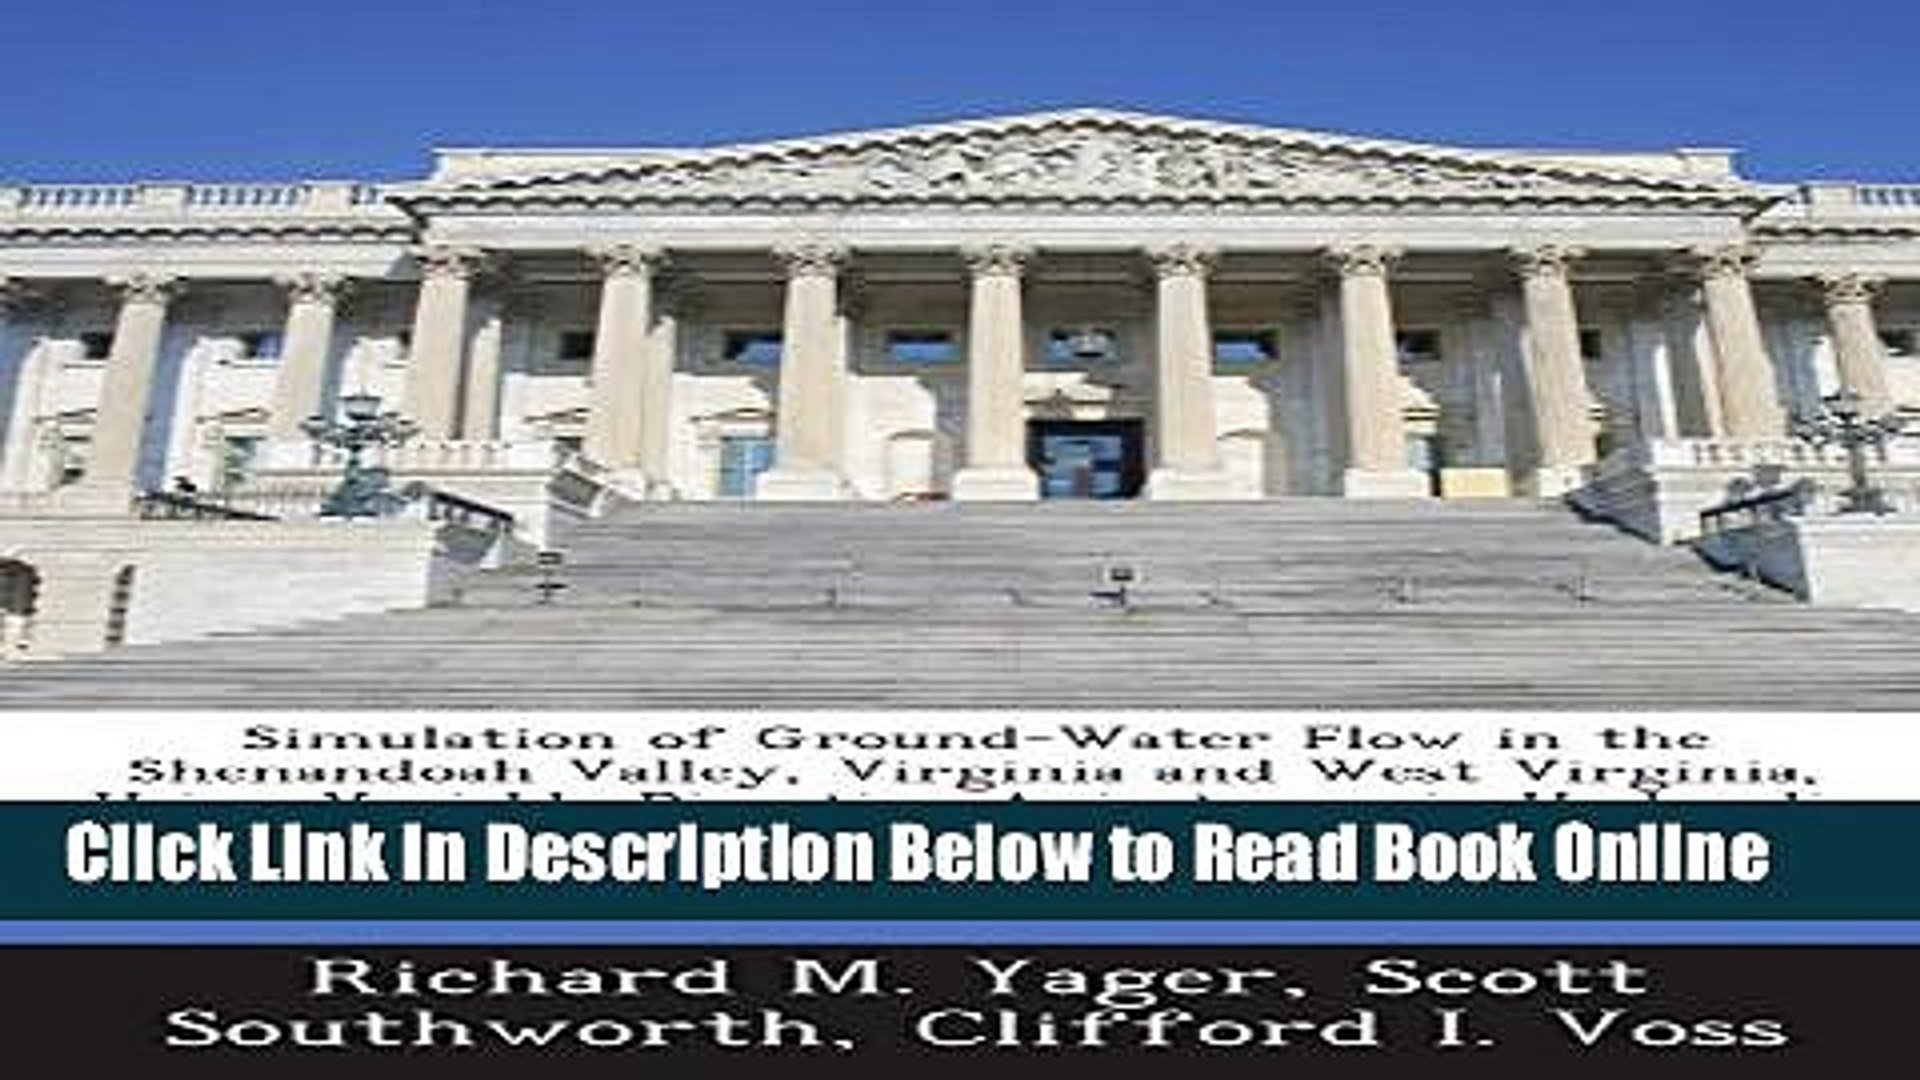 Read Simulation of Ground-Water Flow in the Shenandoah Valley, Virginia and West Virginia, Using